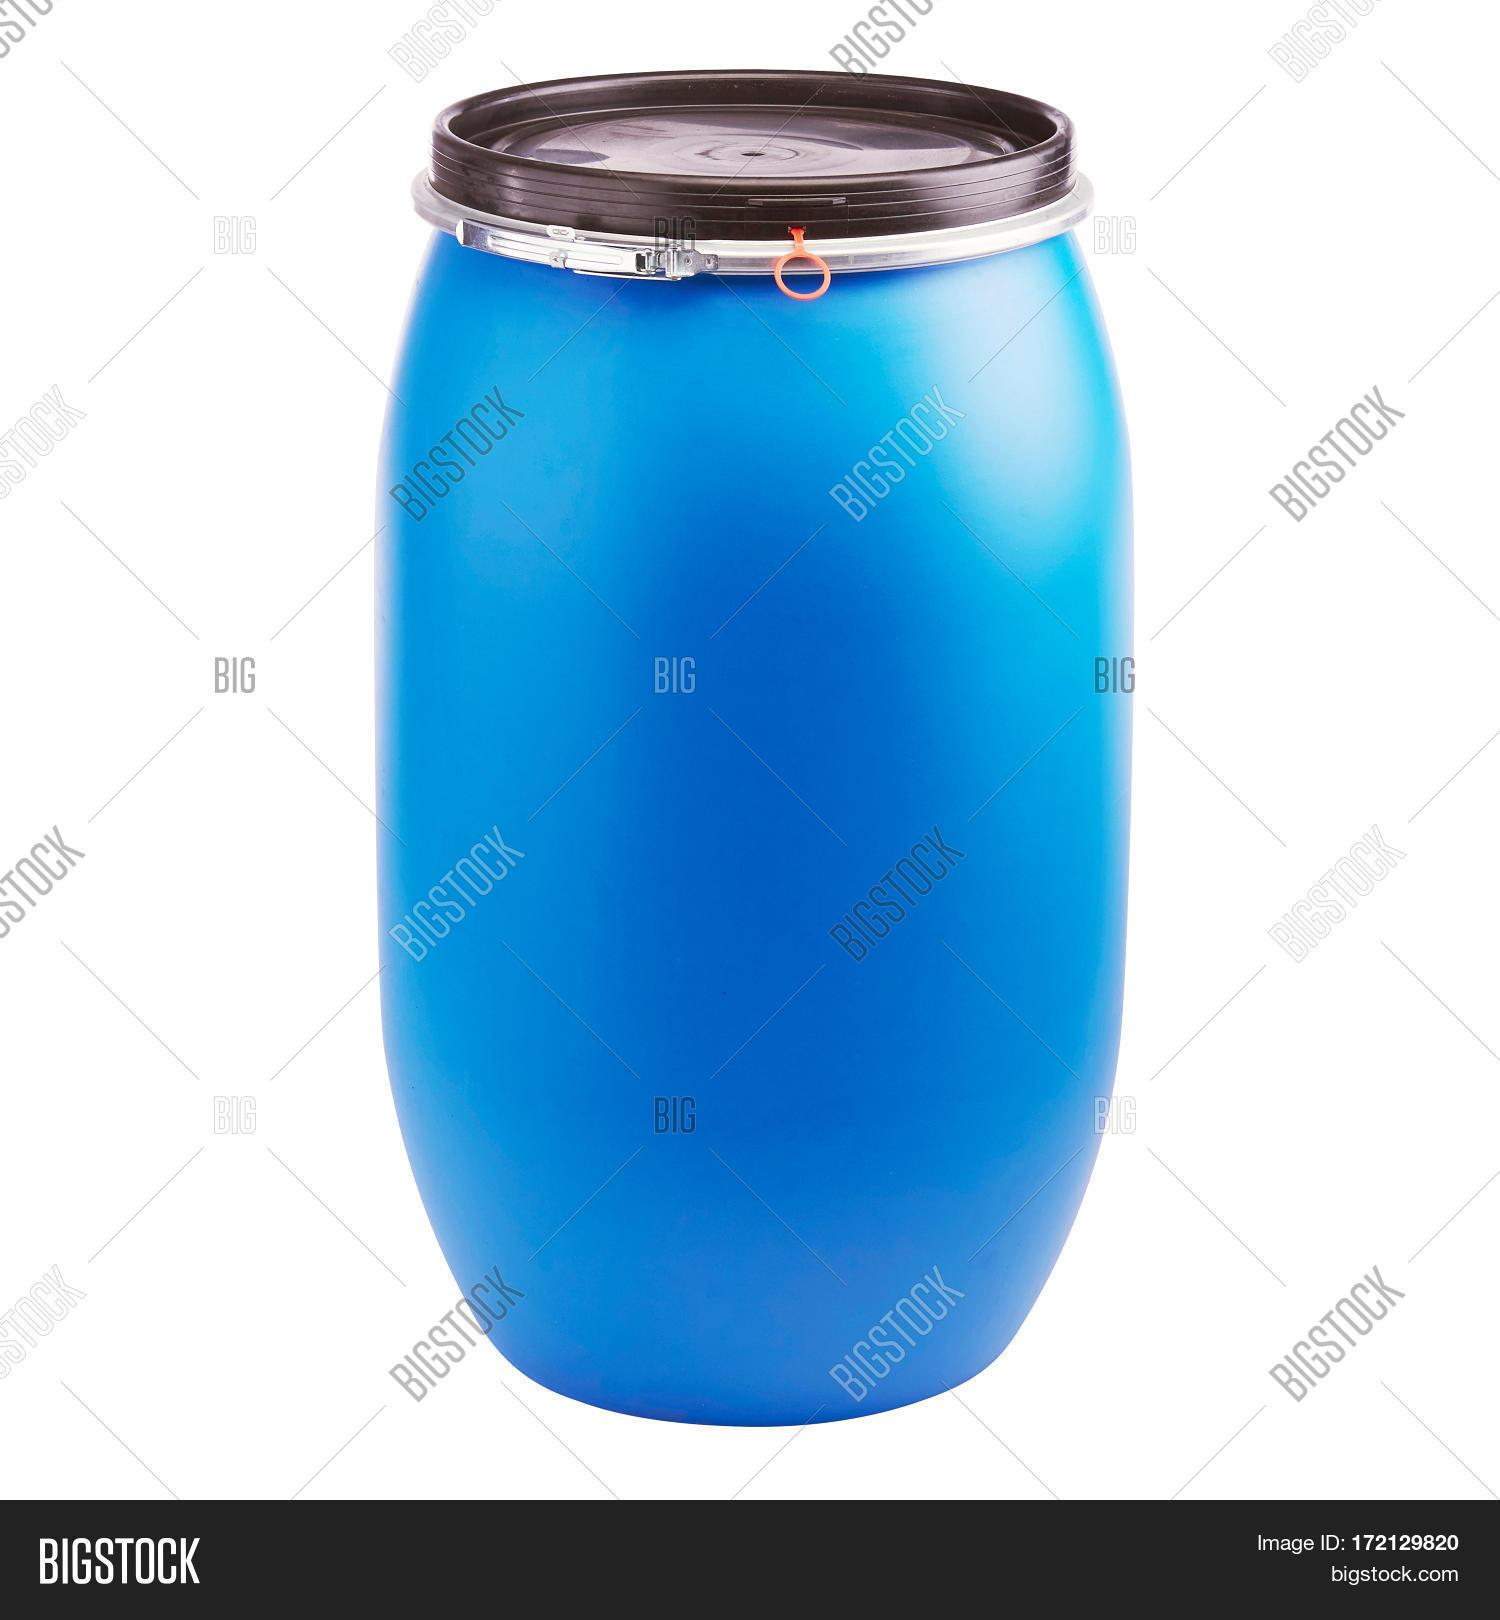 Plastic Storage Drum. Big Blue Image & Photo | Bigstock